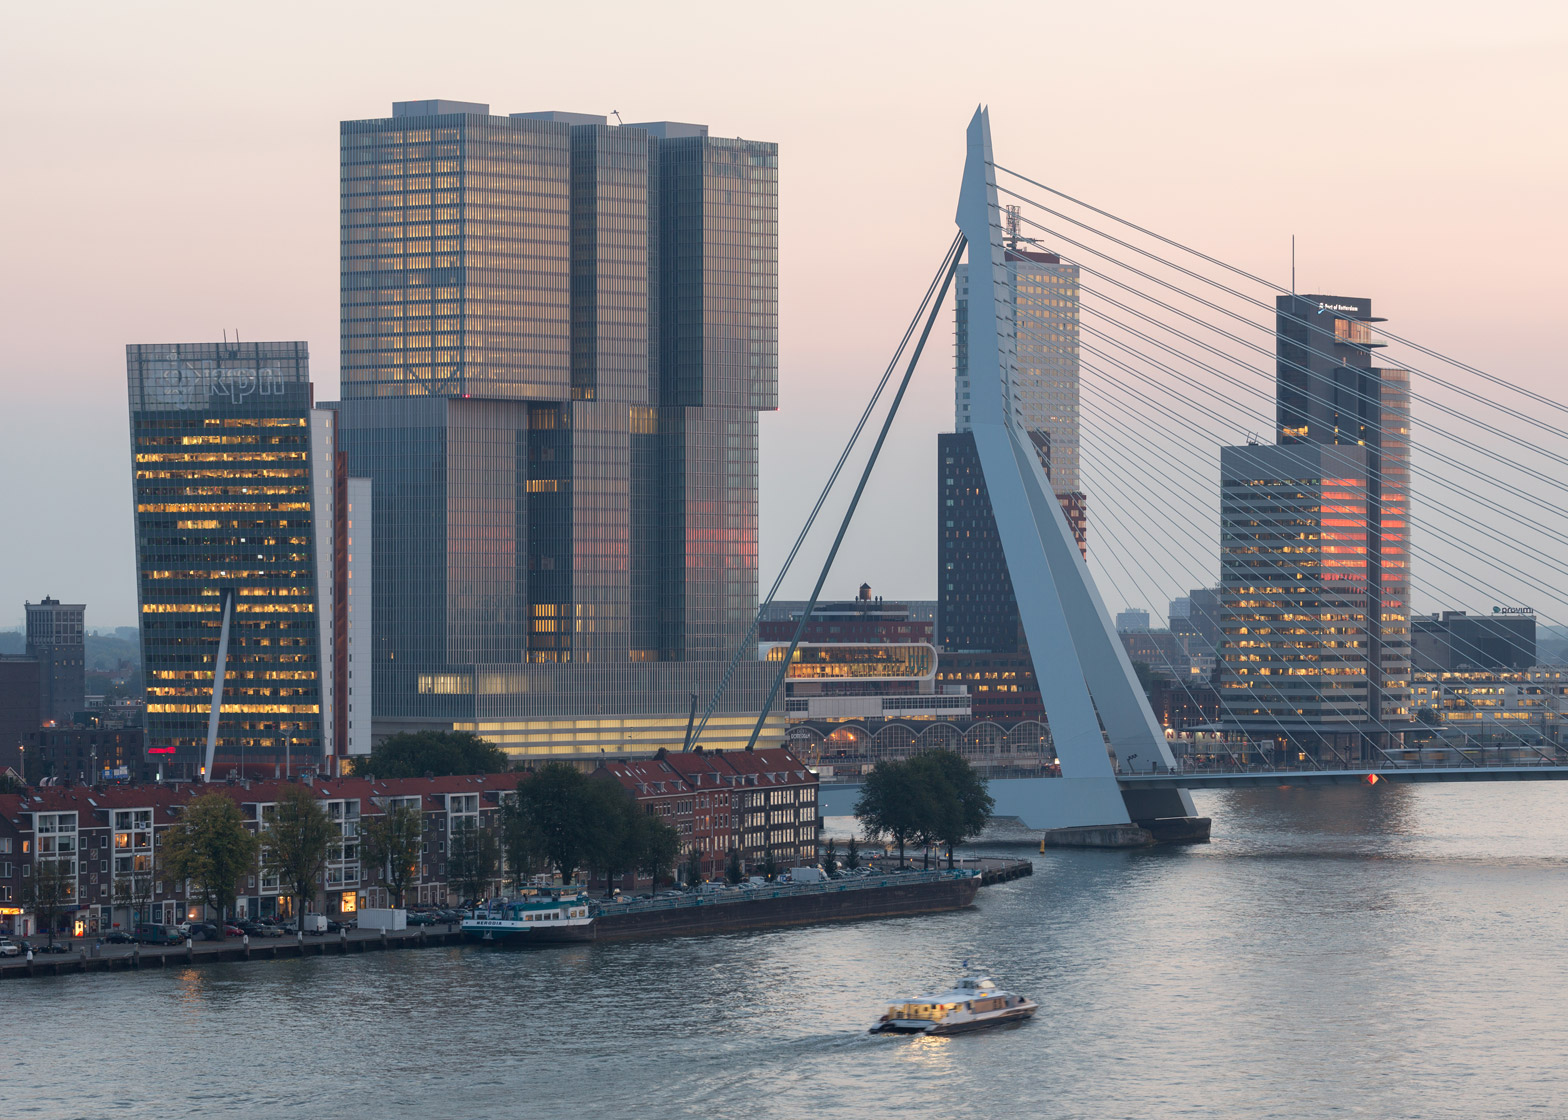 """OMA's De Rotterdam """"vertical city"""" complex opened in 2013. Photograph by Ossip van Duivenbode"""